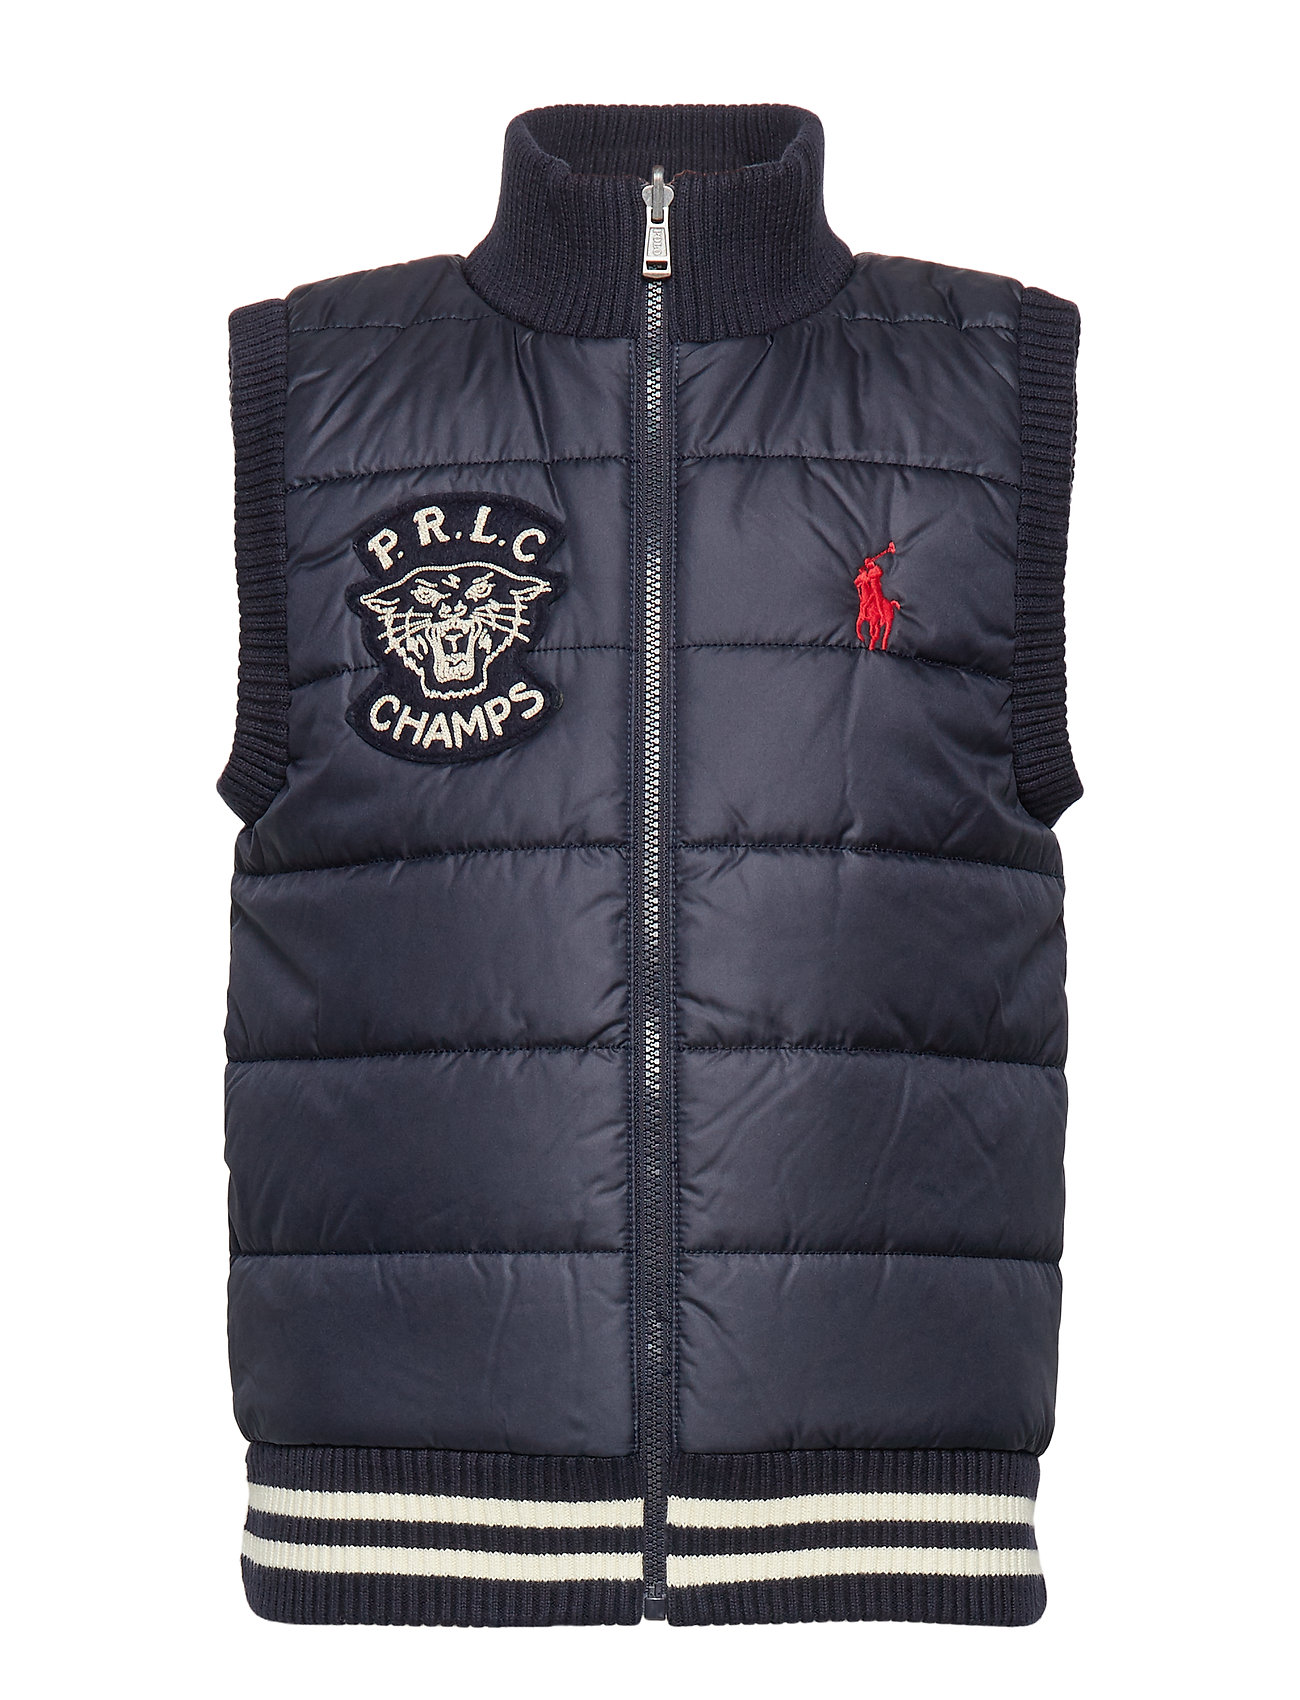 Ralph Lauren Kids Reversible Sweater Vest - RL NAVY MULTI